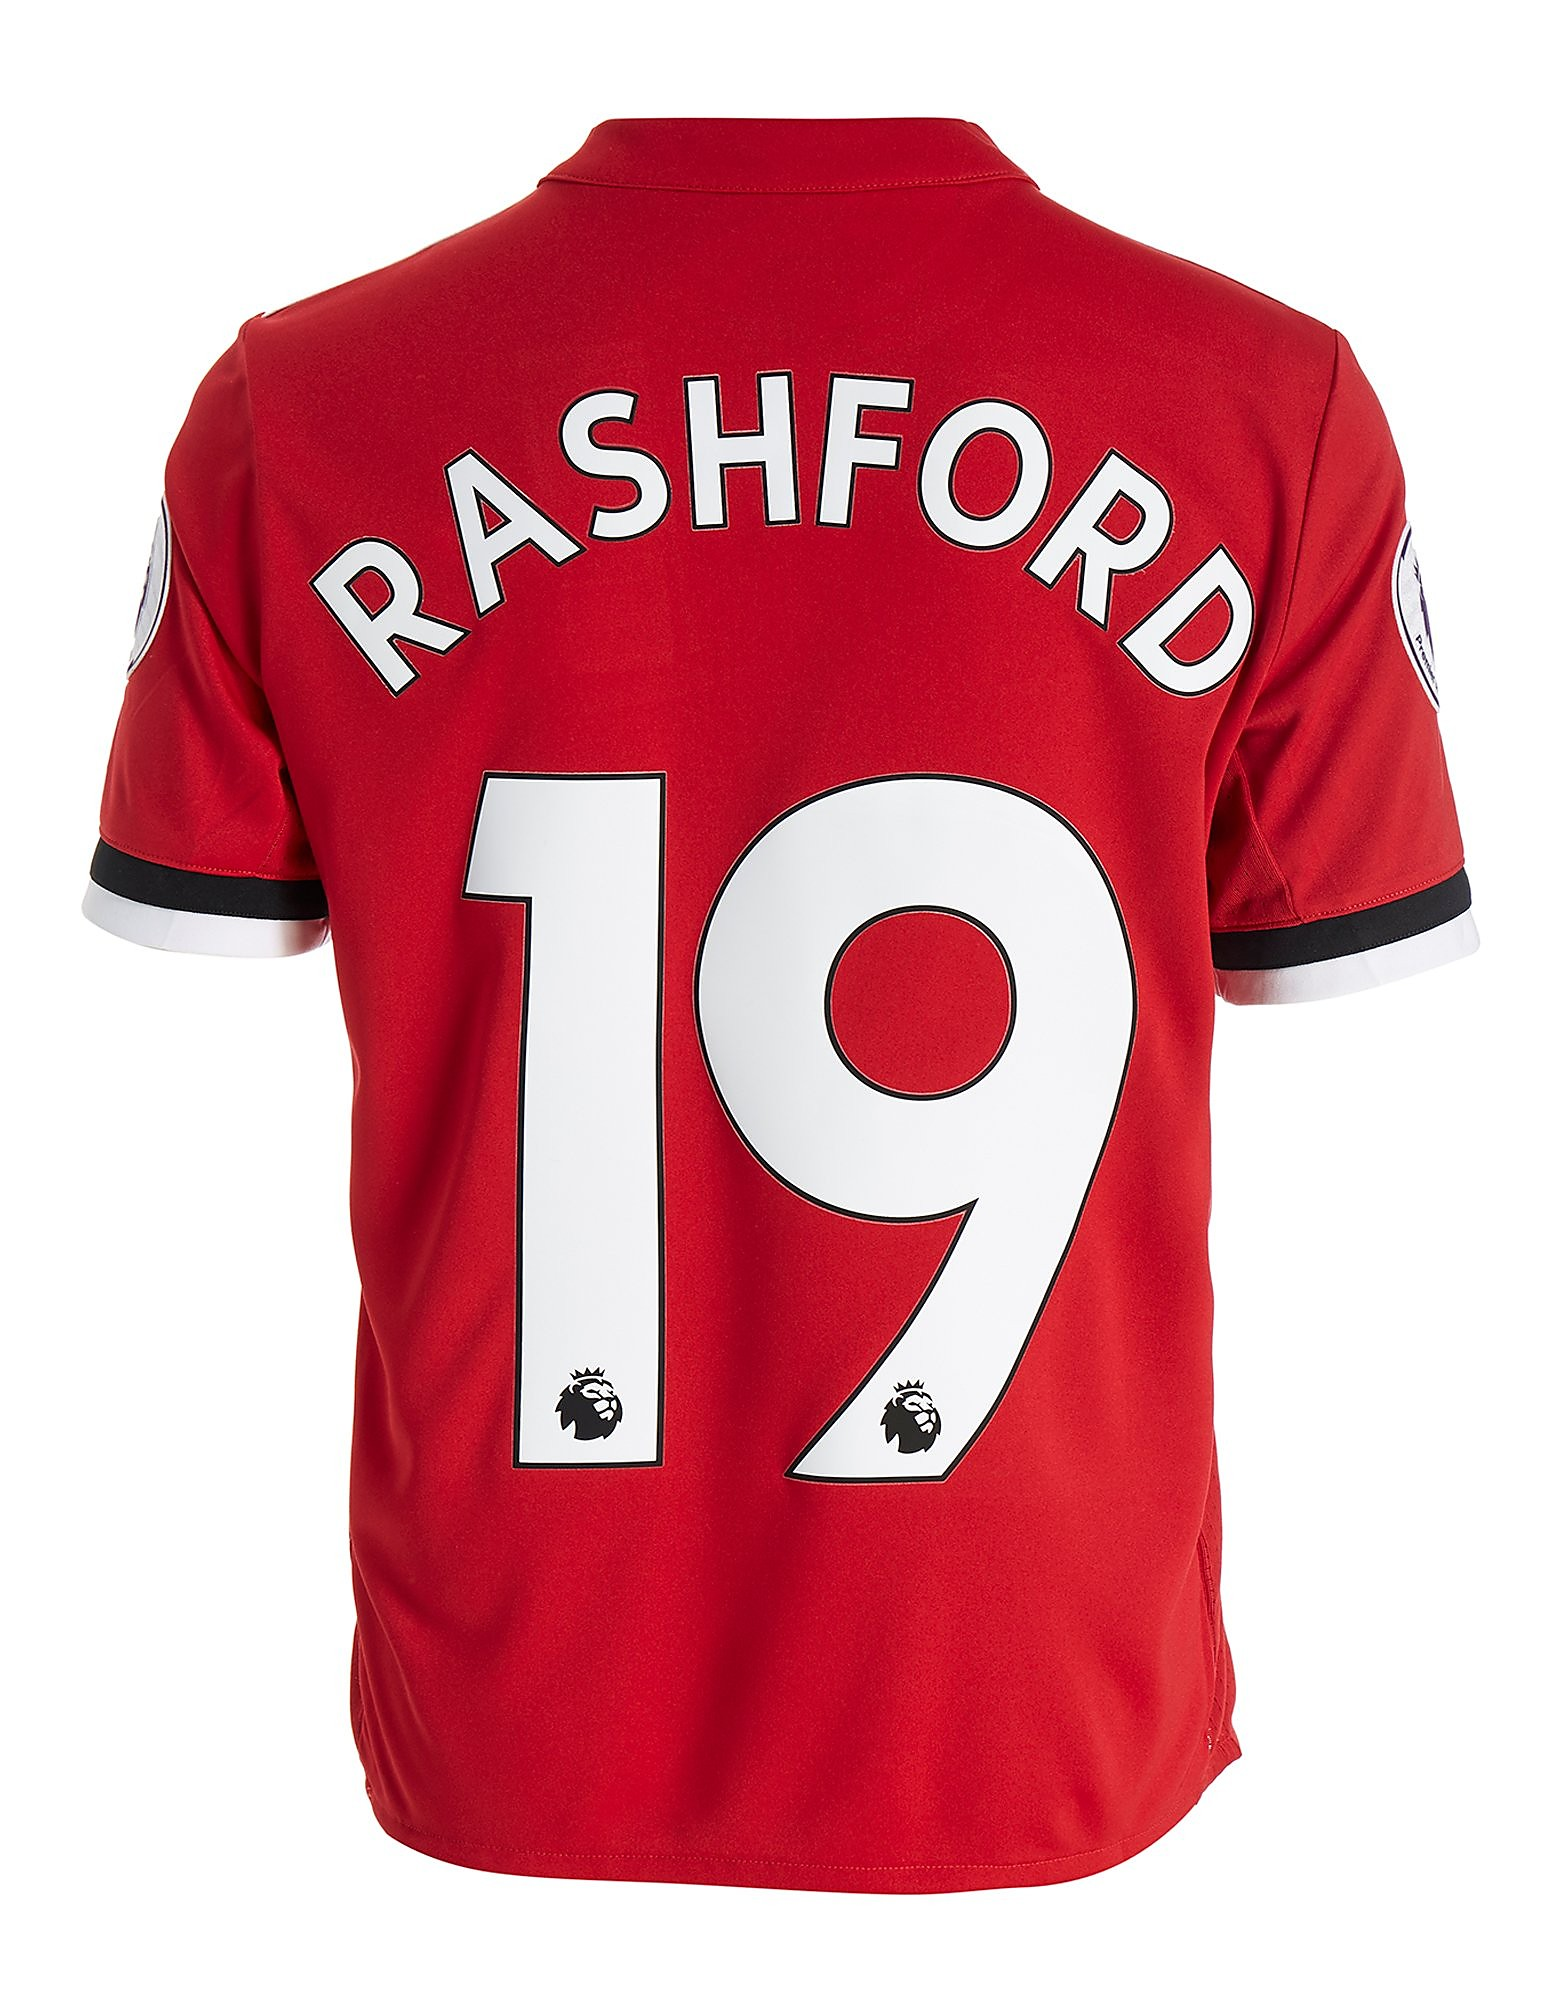 adidas Manchester United Rashford 2017/18 Home Shirt Jnr